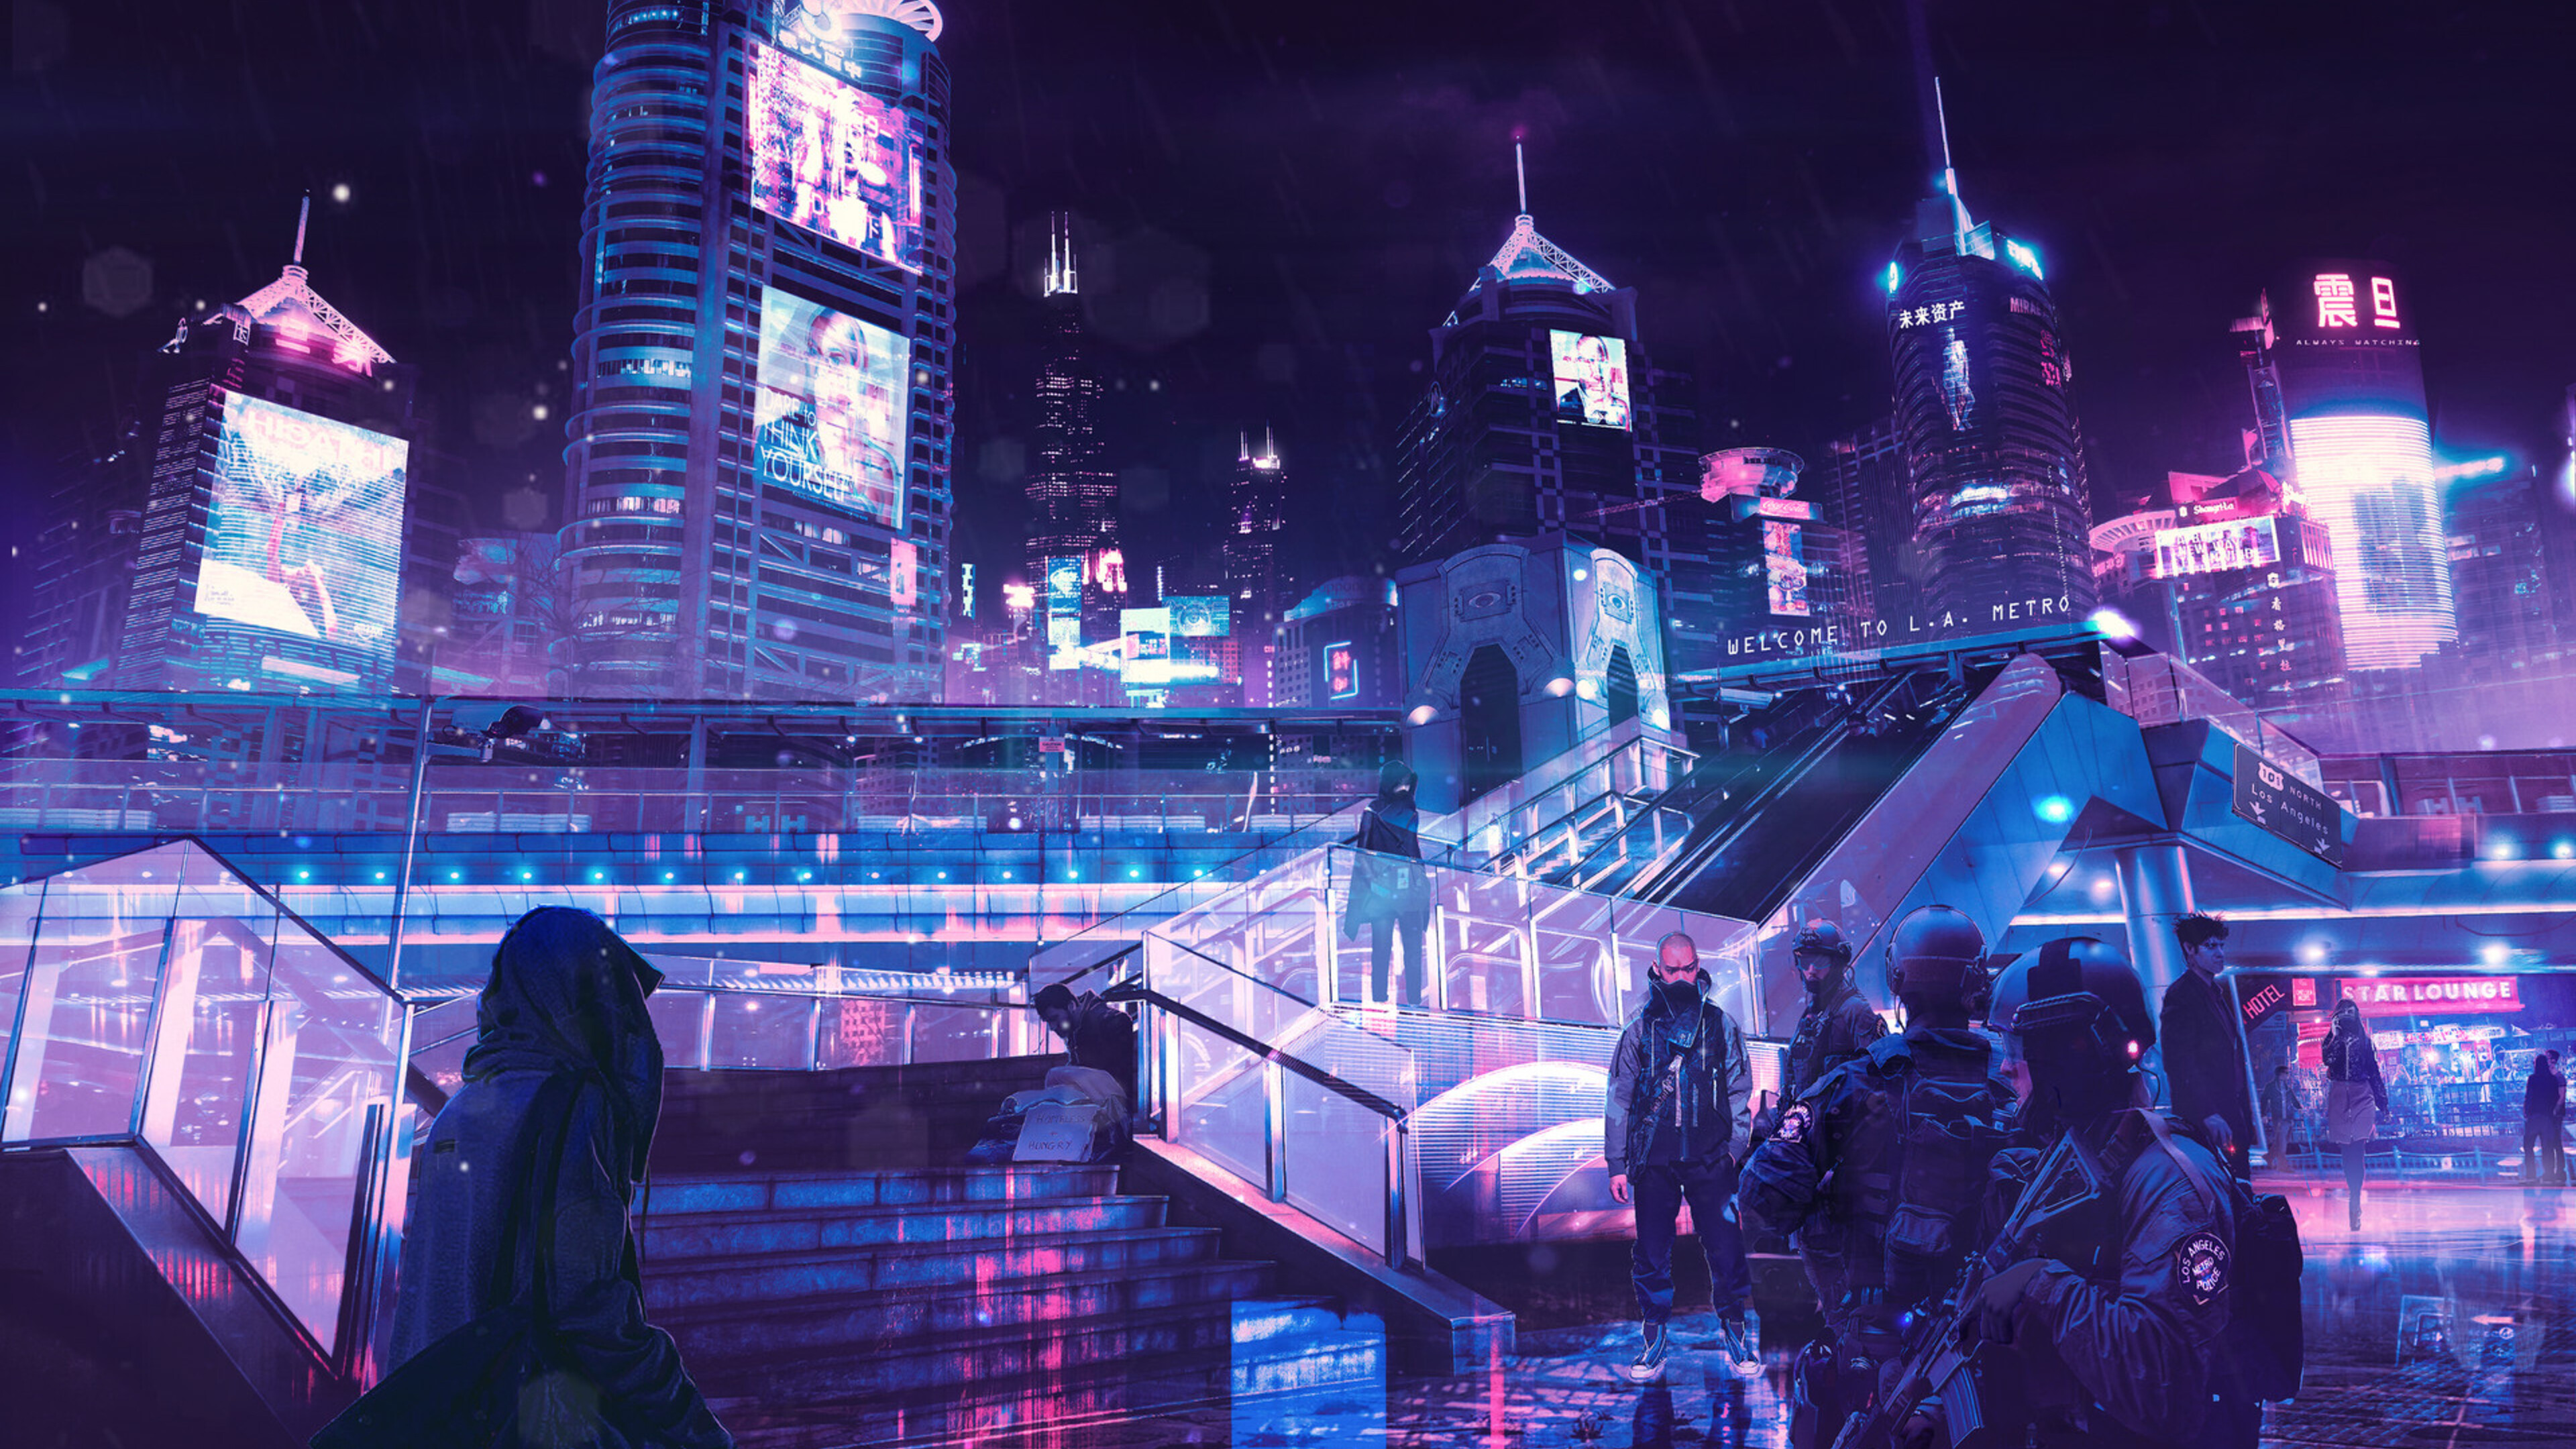 Cyberpunk Neon City 4k HD 4k Wallpapers